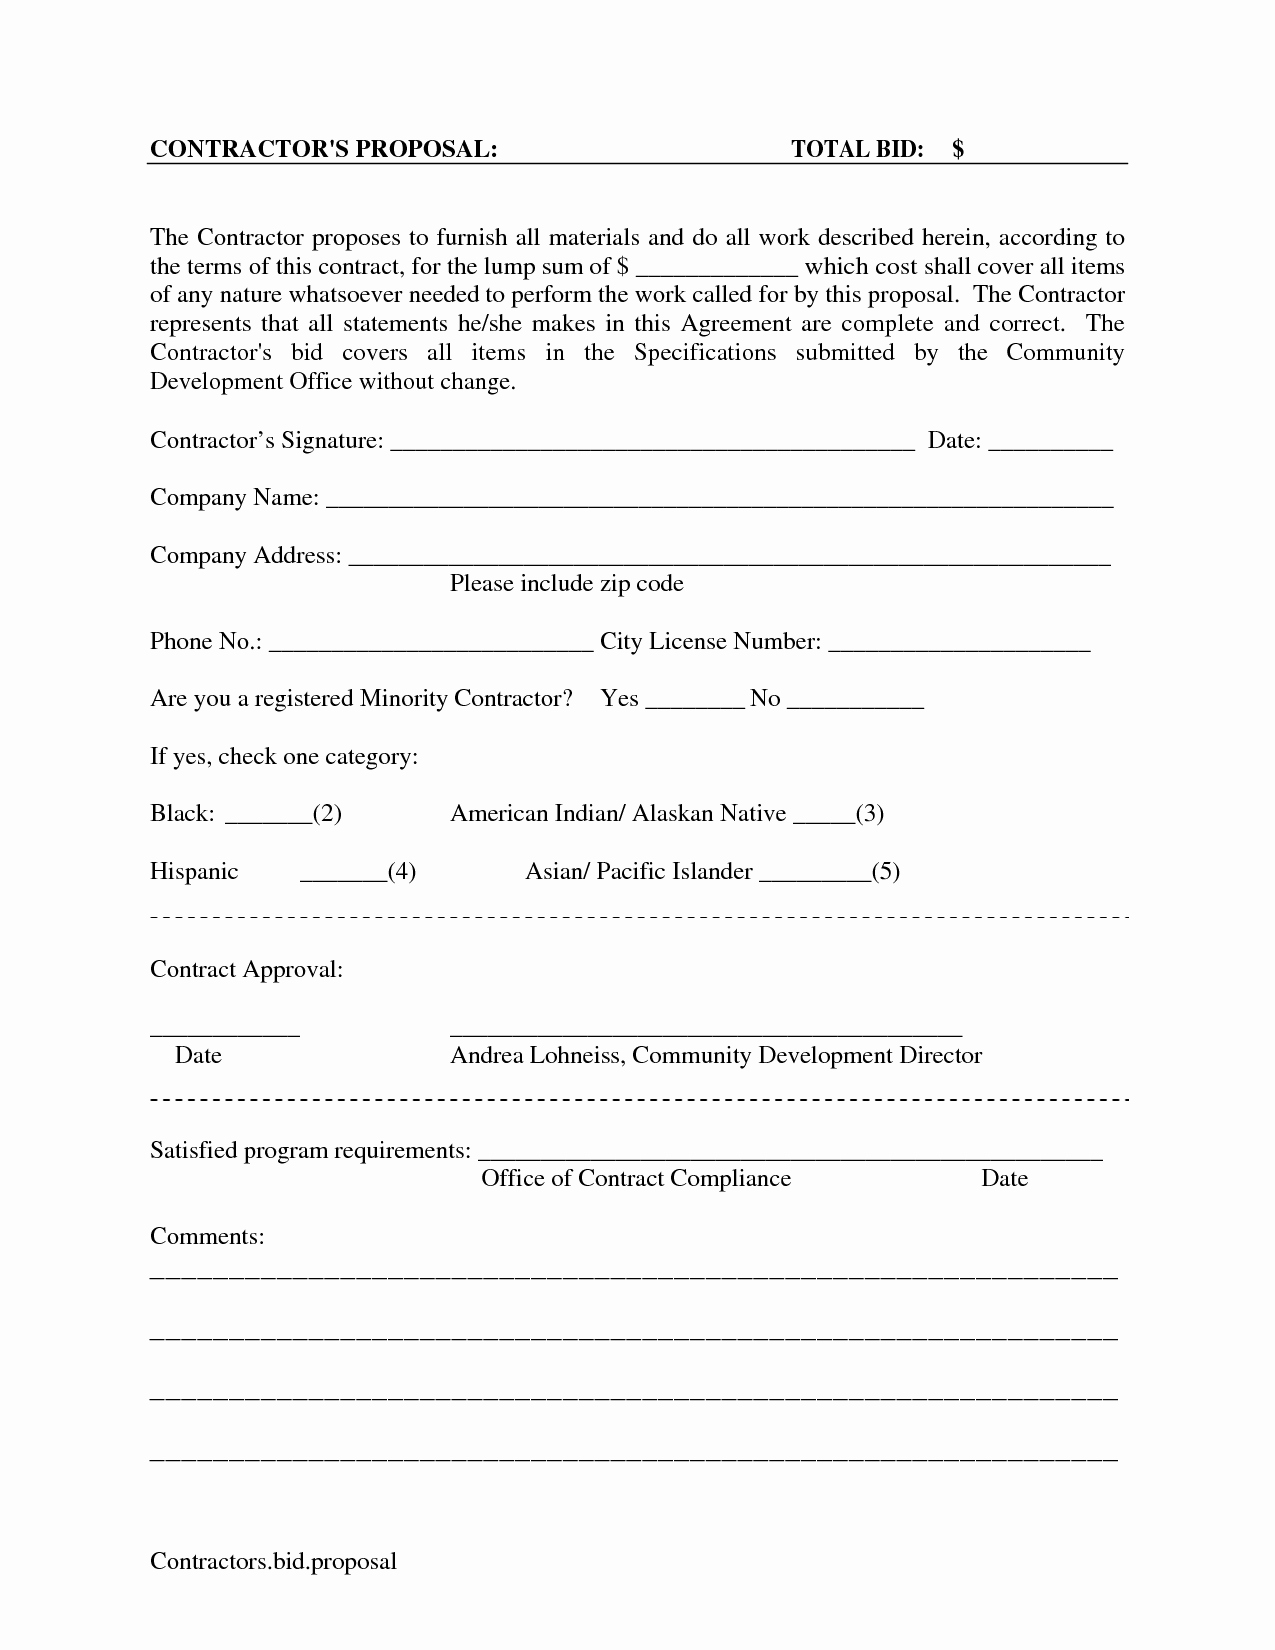 Cleaning Bid Proposal Template Awesome Printable Blank Bid Proposal forms